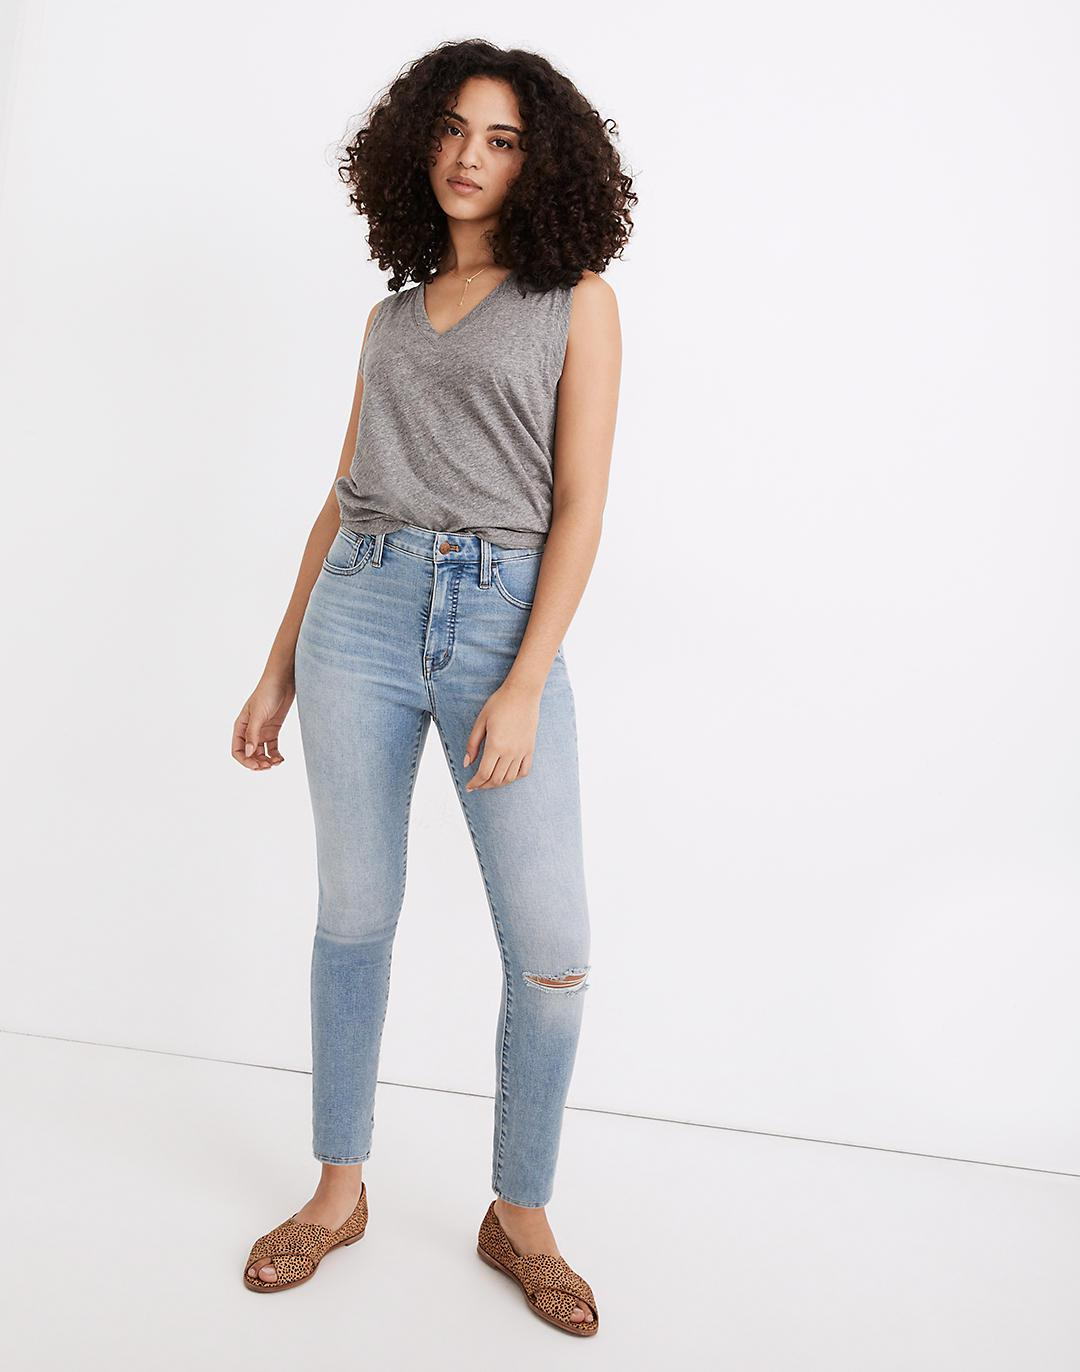 Tall Curvy Roadtripper Authentic Jeans in Benton Wash: Knee-Rip Edition